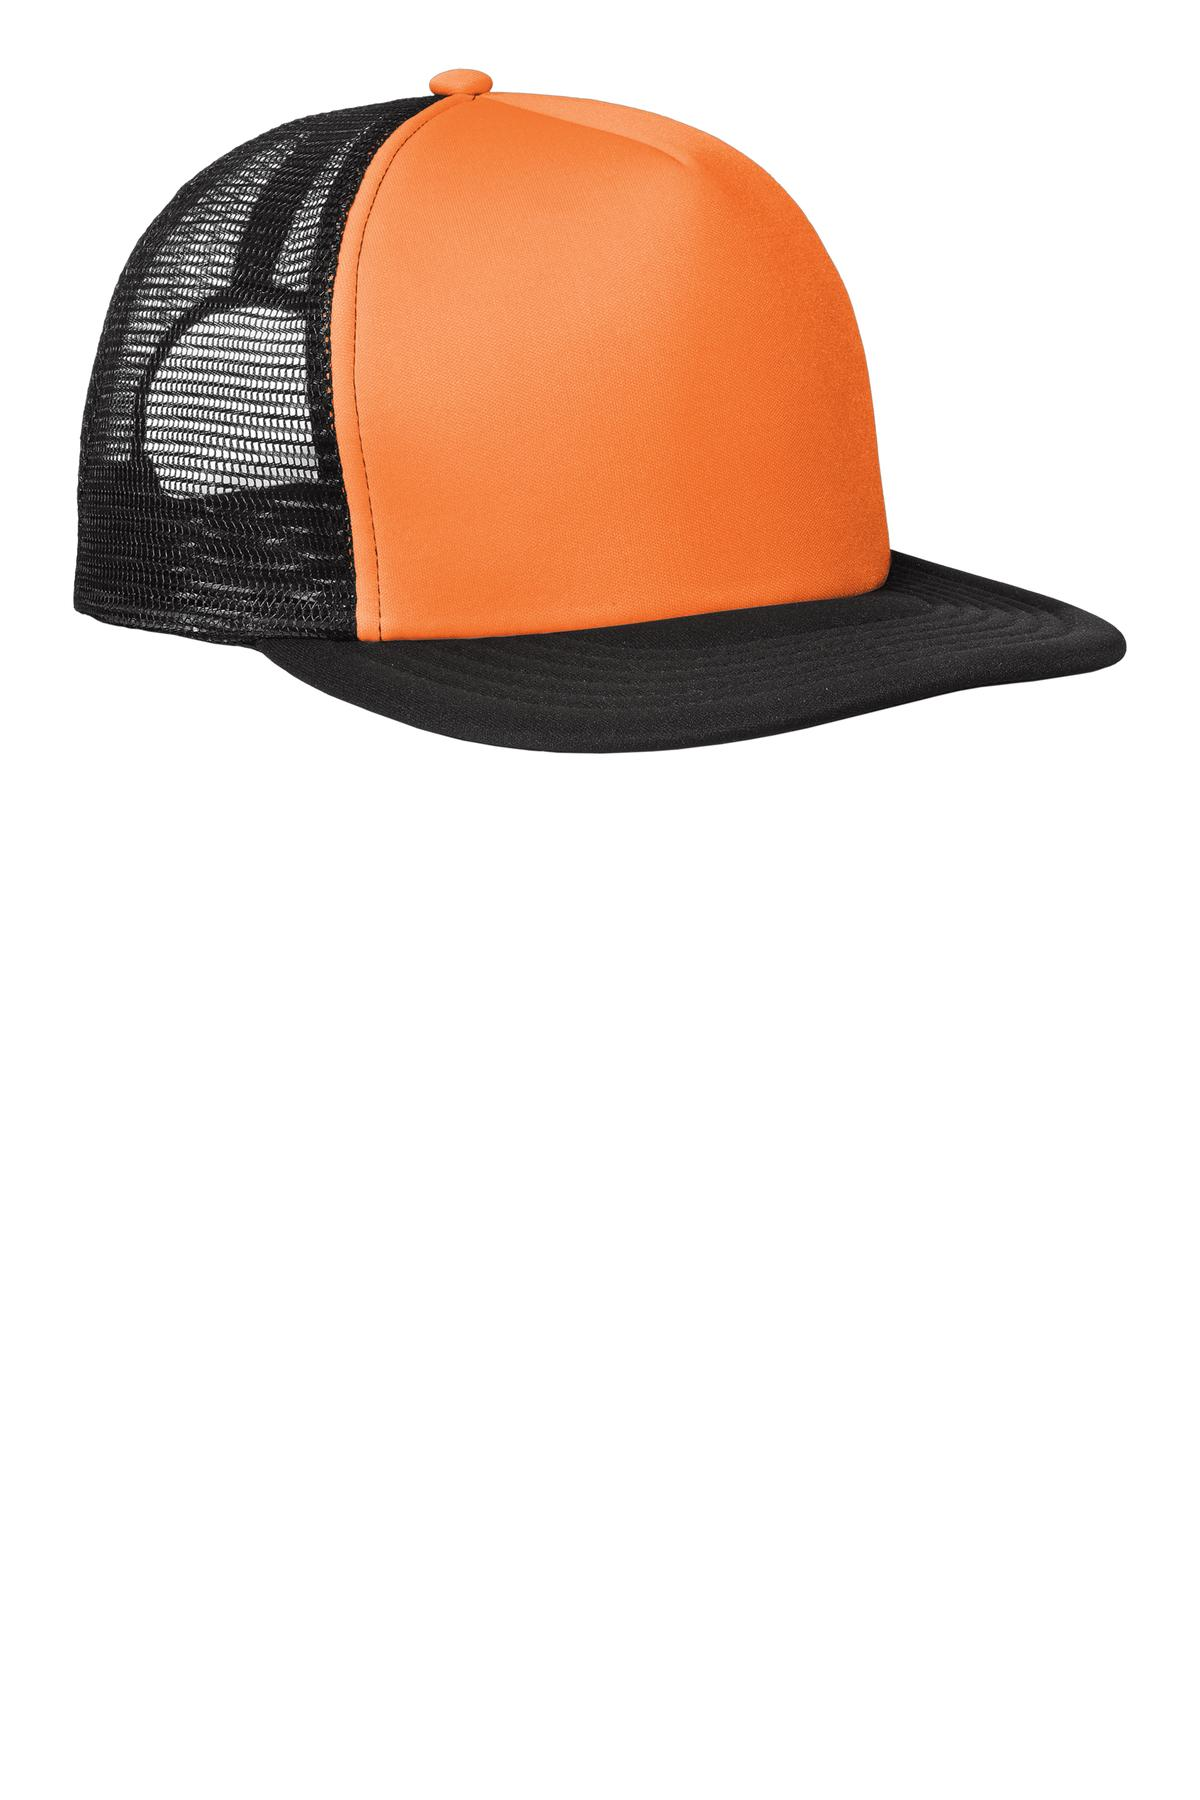 District ®  Flat Bill Snapback Trucker Cap. DT624 - Neon Orange